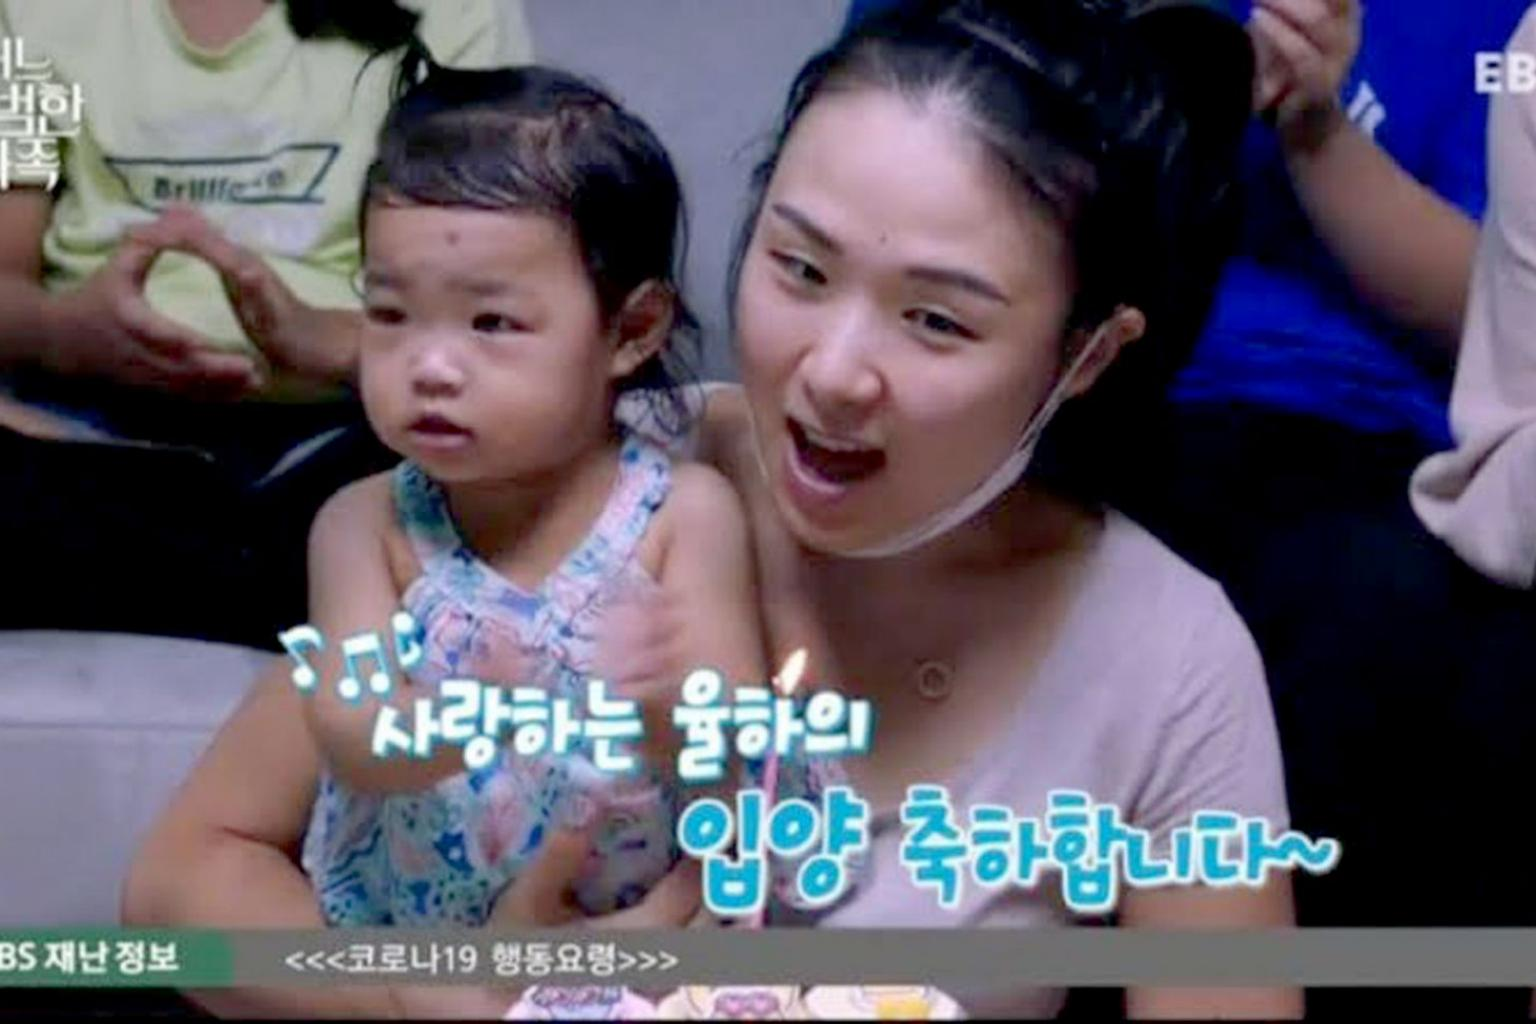 Mystery clouds death of 3-year-old South Korean girl left to starve by 'mum'